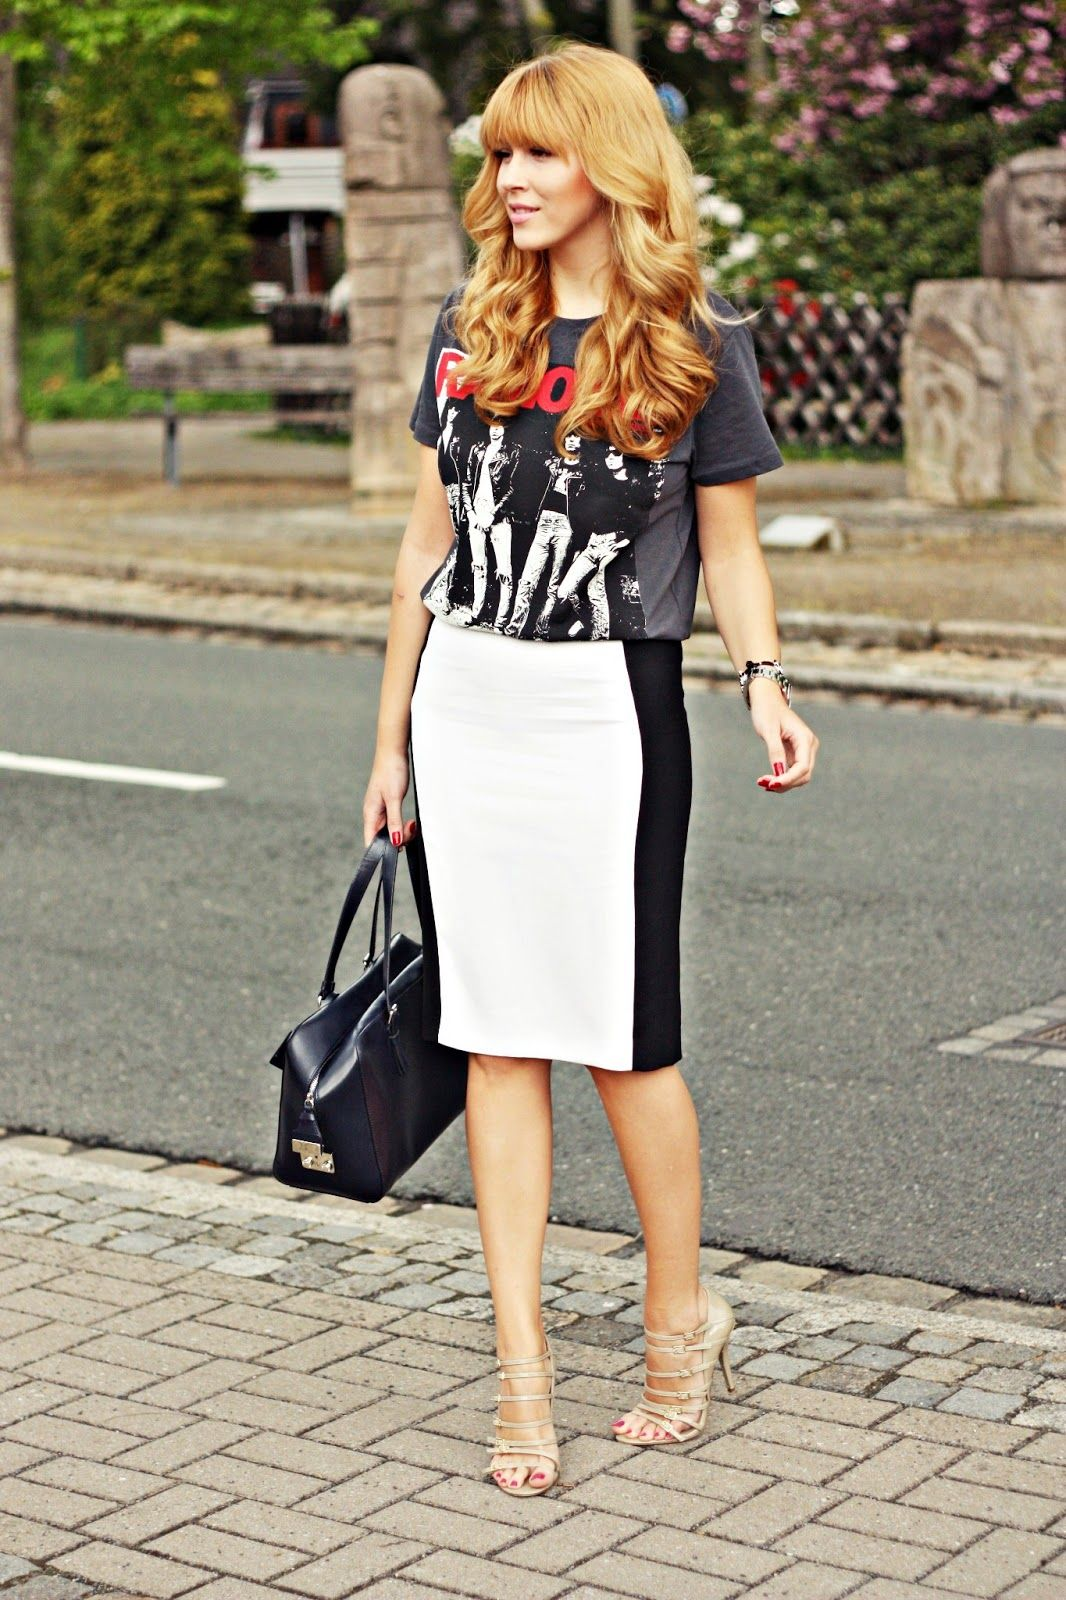 Graphic T Shirt With Skirt Trend Also Noteworthy White Skirt With